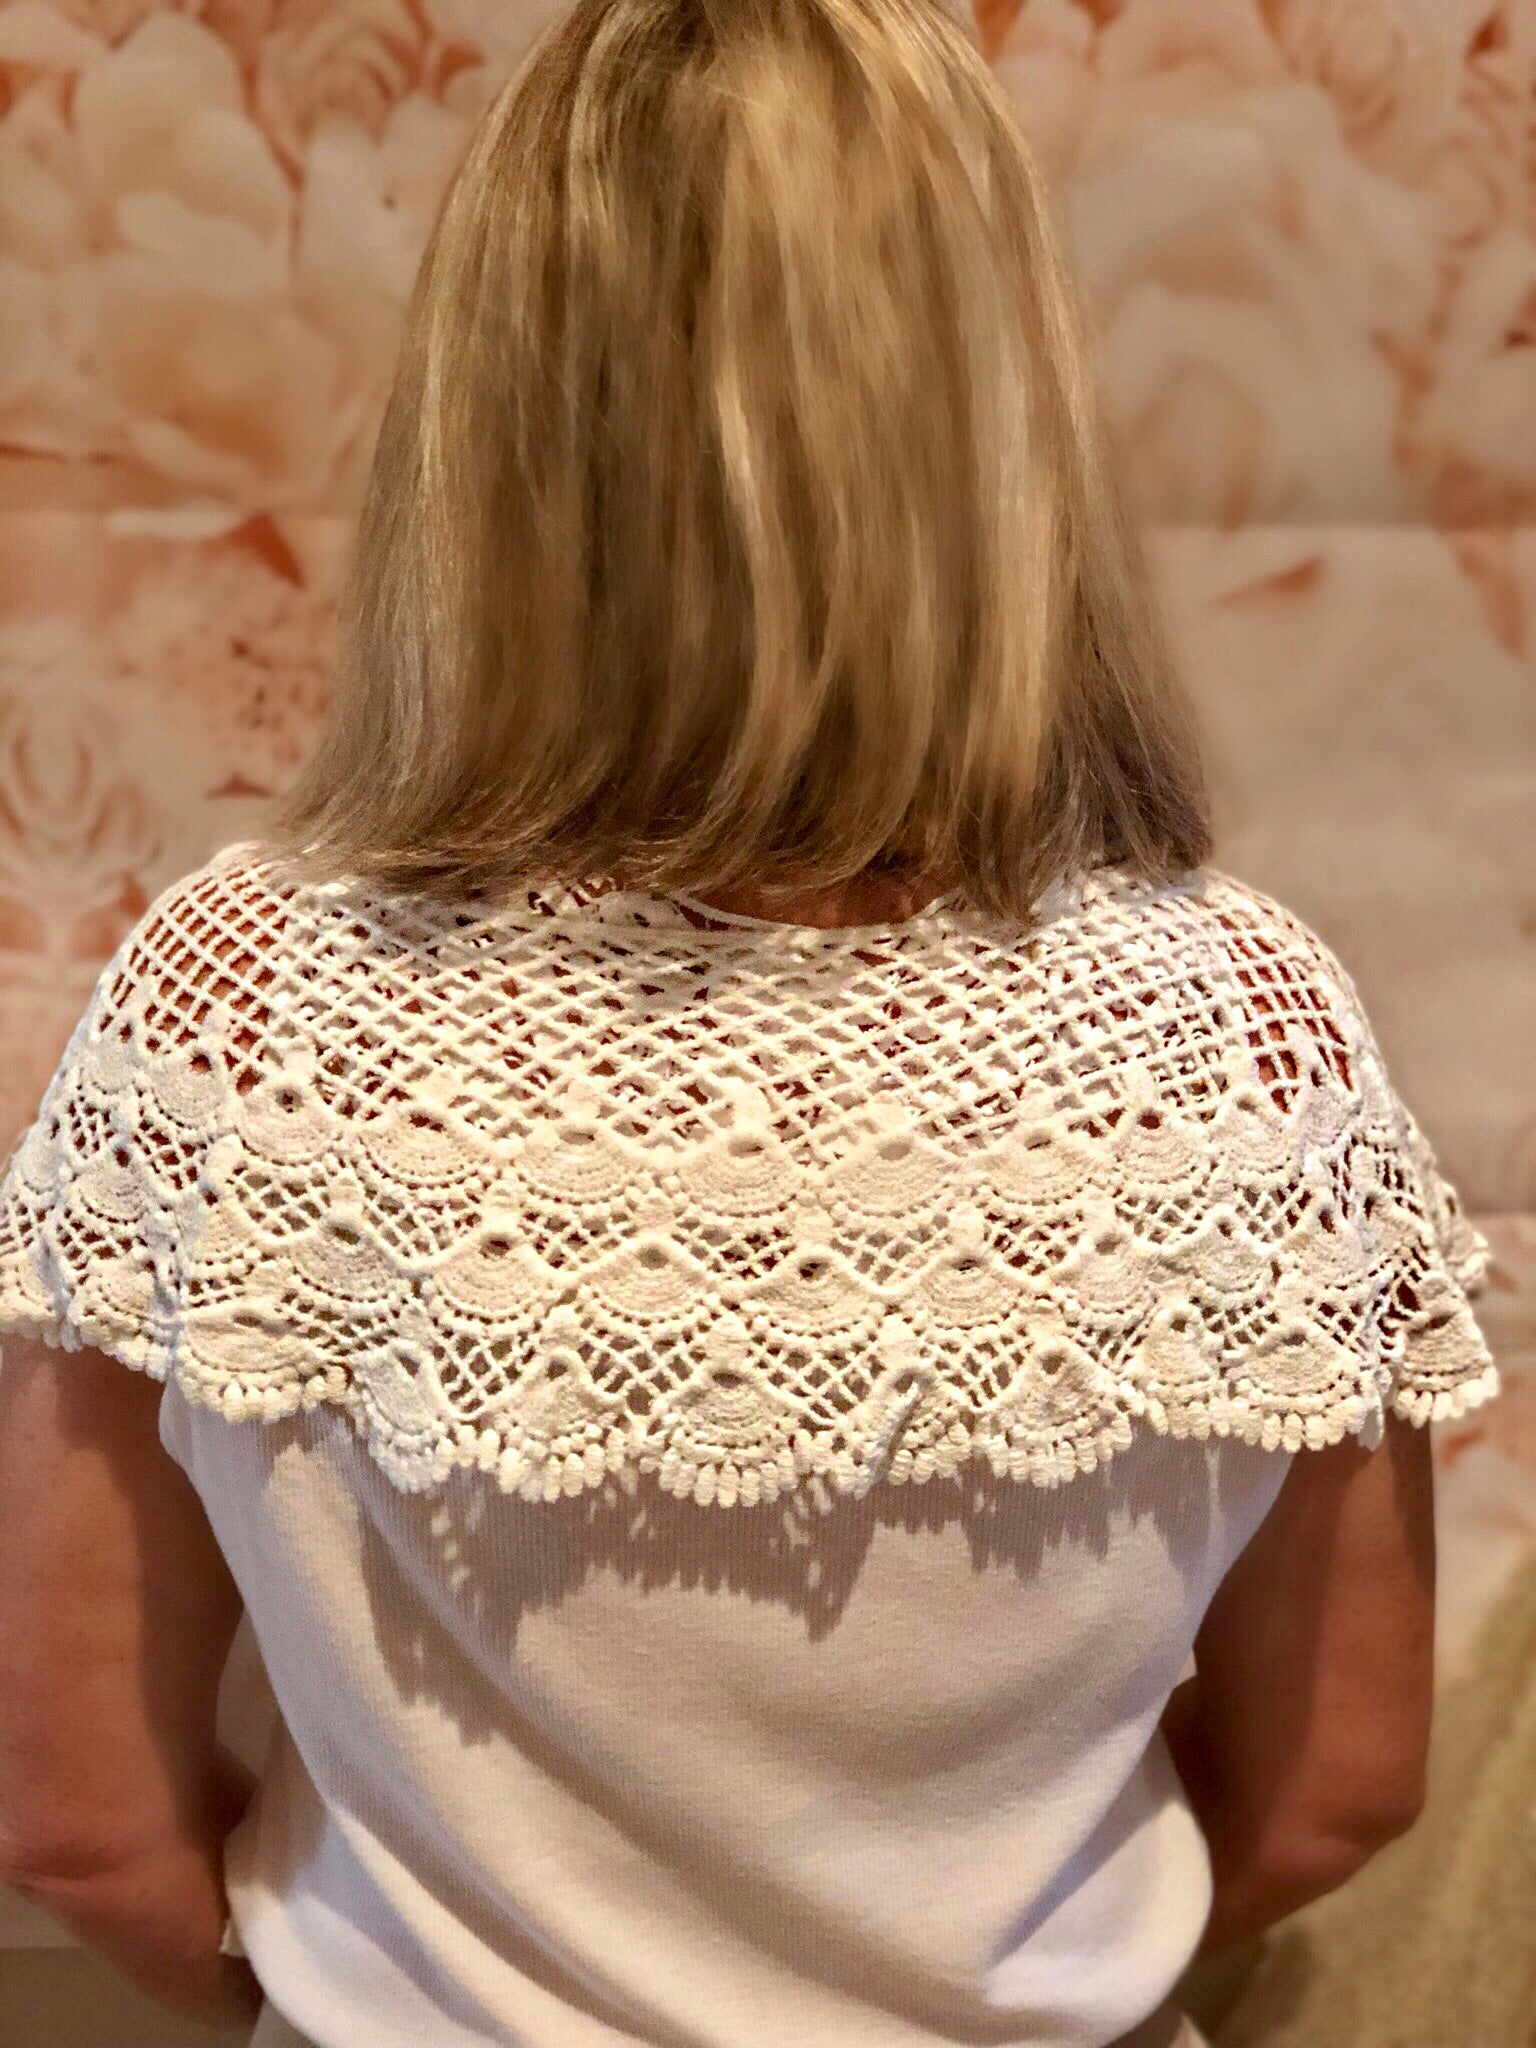 White Crochet Lace Shoulder Cape - Purity Lace Designs